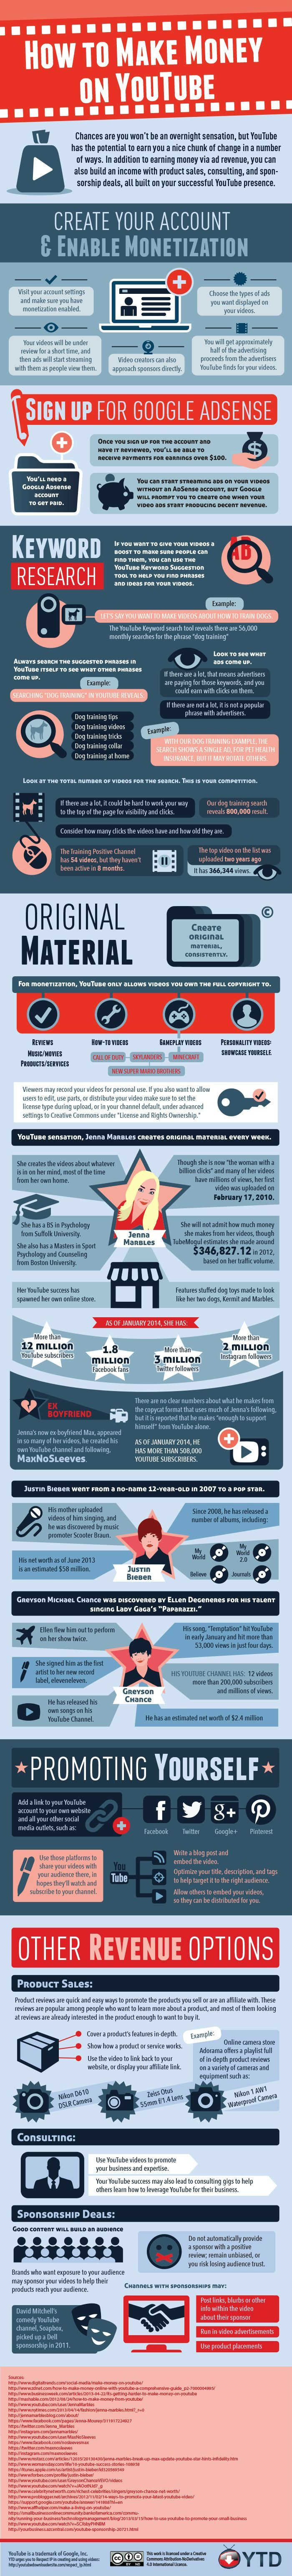 [Infographic] 5 tips to earn money on #YouTube - #infographic